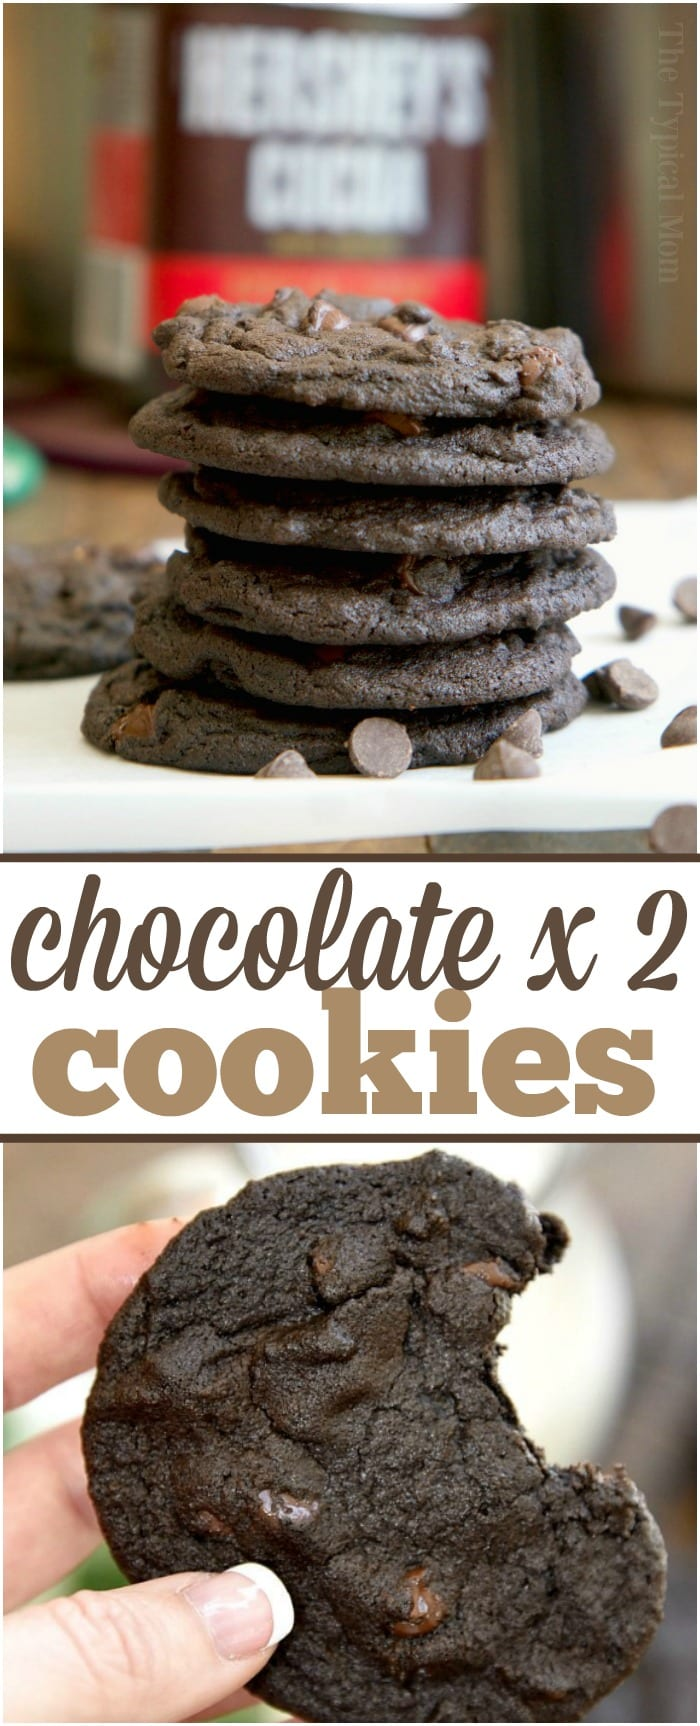 Chewy double chocolate chip cookies that are the softest you'll ever try. Dark chocolate with chocolate chips and as soft as a brownie, delicious!